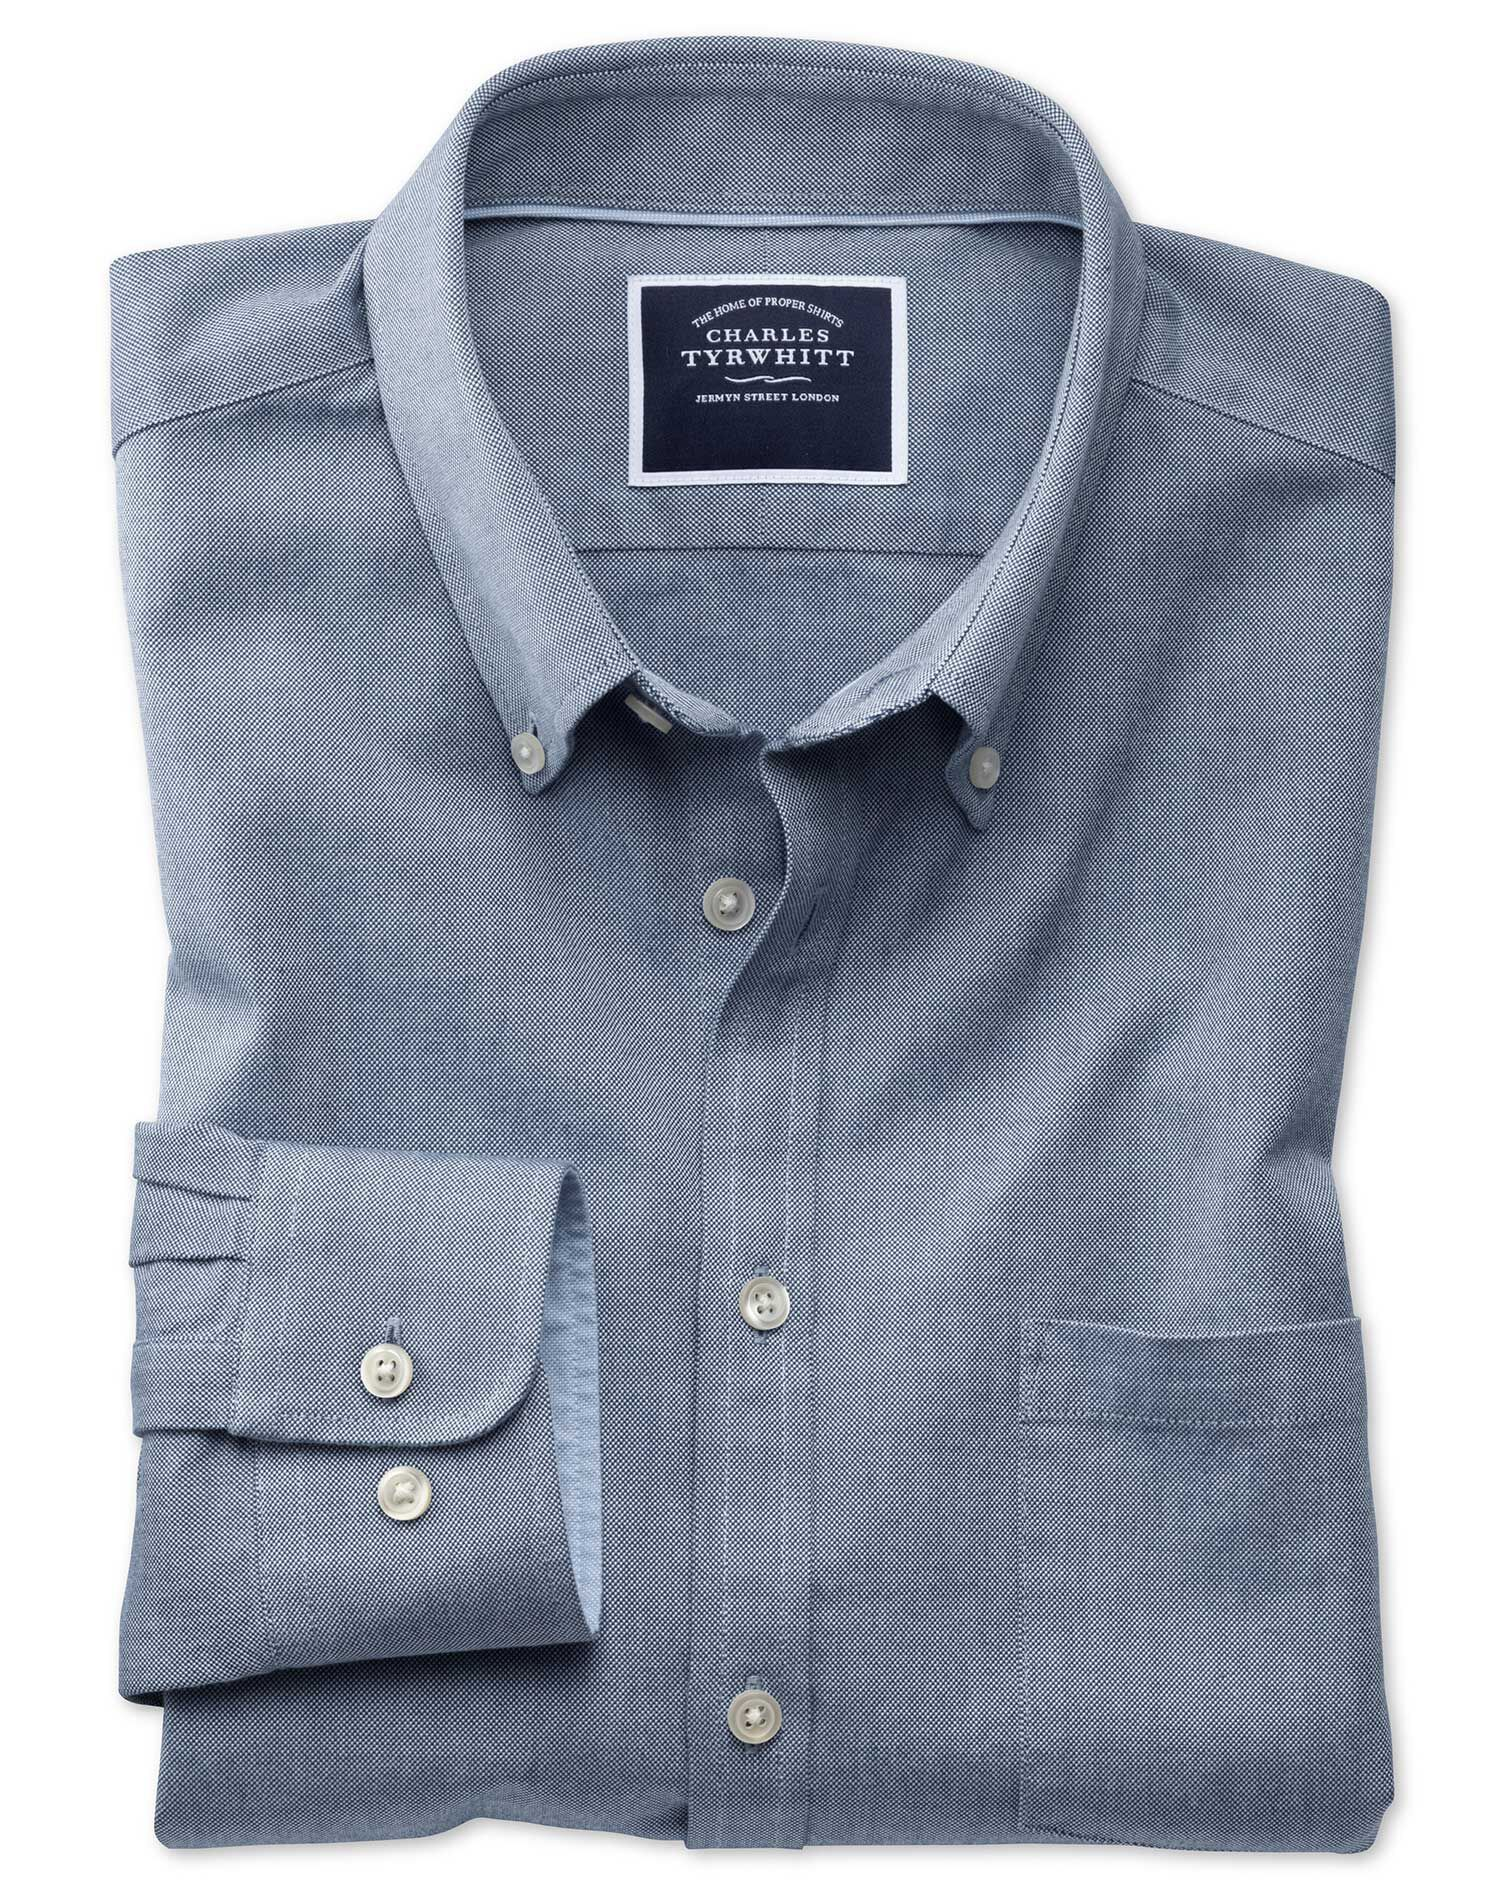 Slim Fit Button-Down Washed Oxford Plain Indigo Blue Cotton Shirt Single Cuff Size Small by Charles